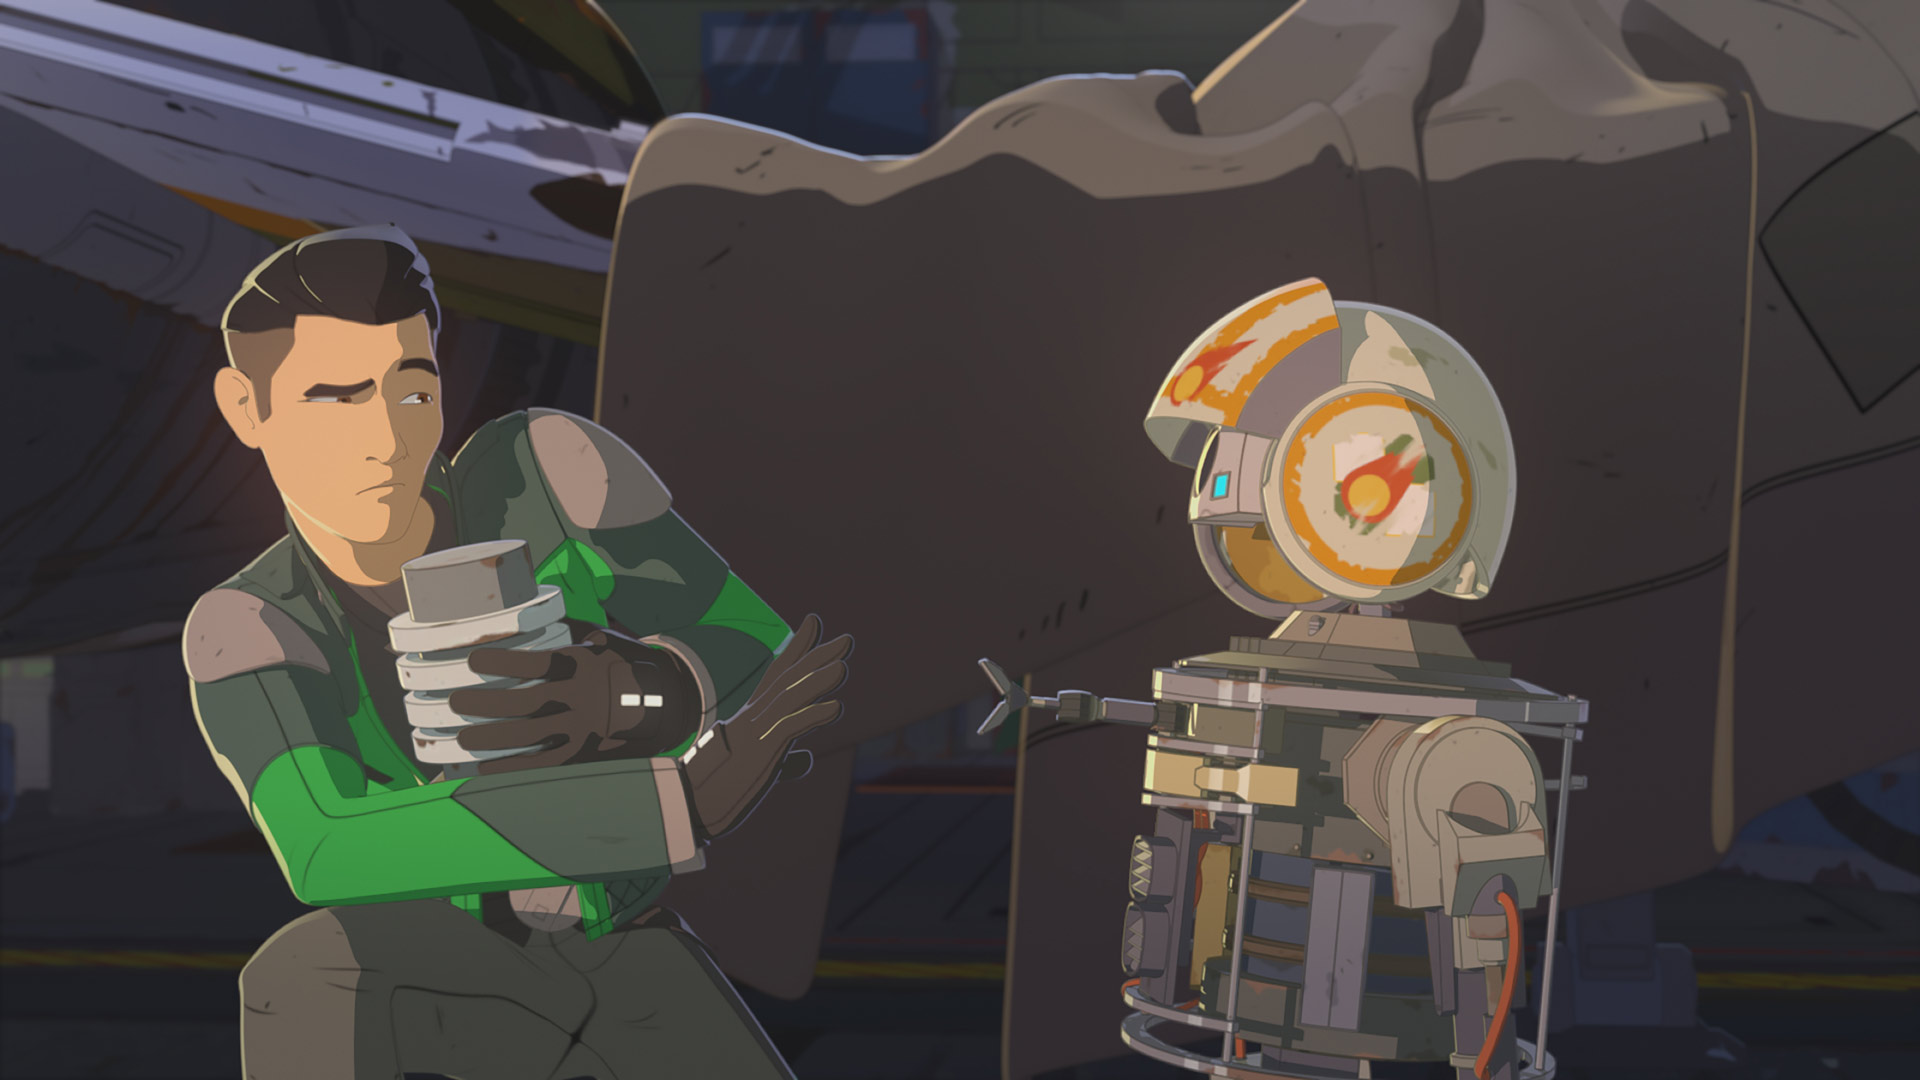 Kaz and Bucket in Star Wars Resistance.